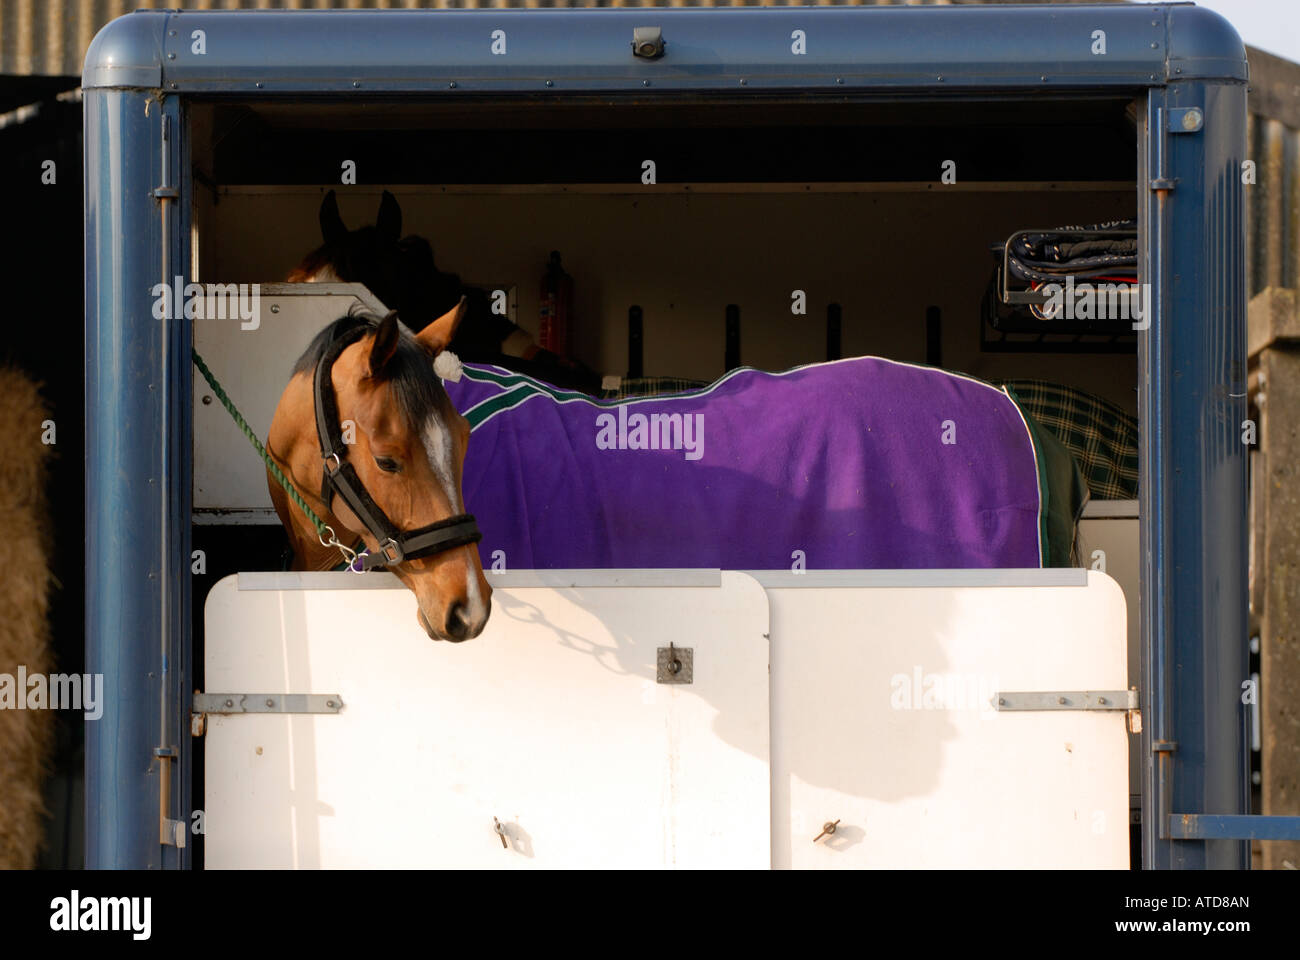 a horse in a horsebox wearing a rug and peering looking over the back doors of the open lorry after being transported - Stock Image